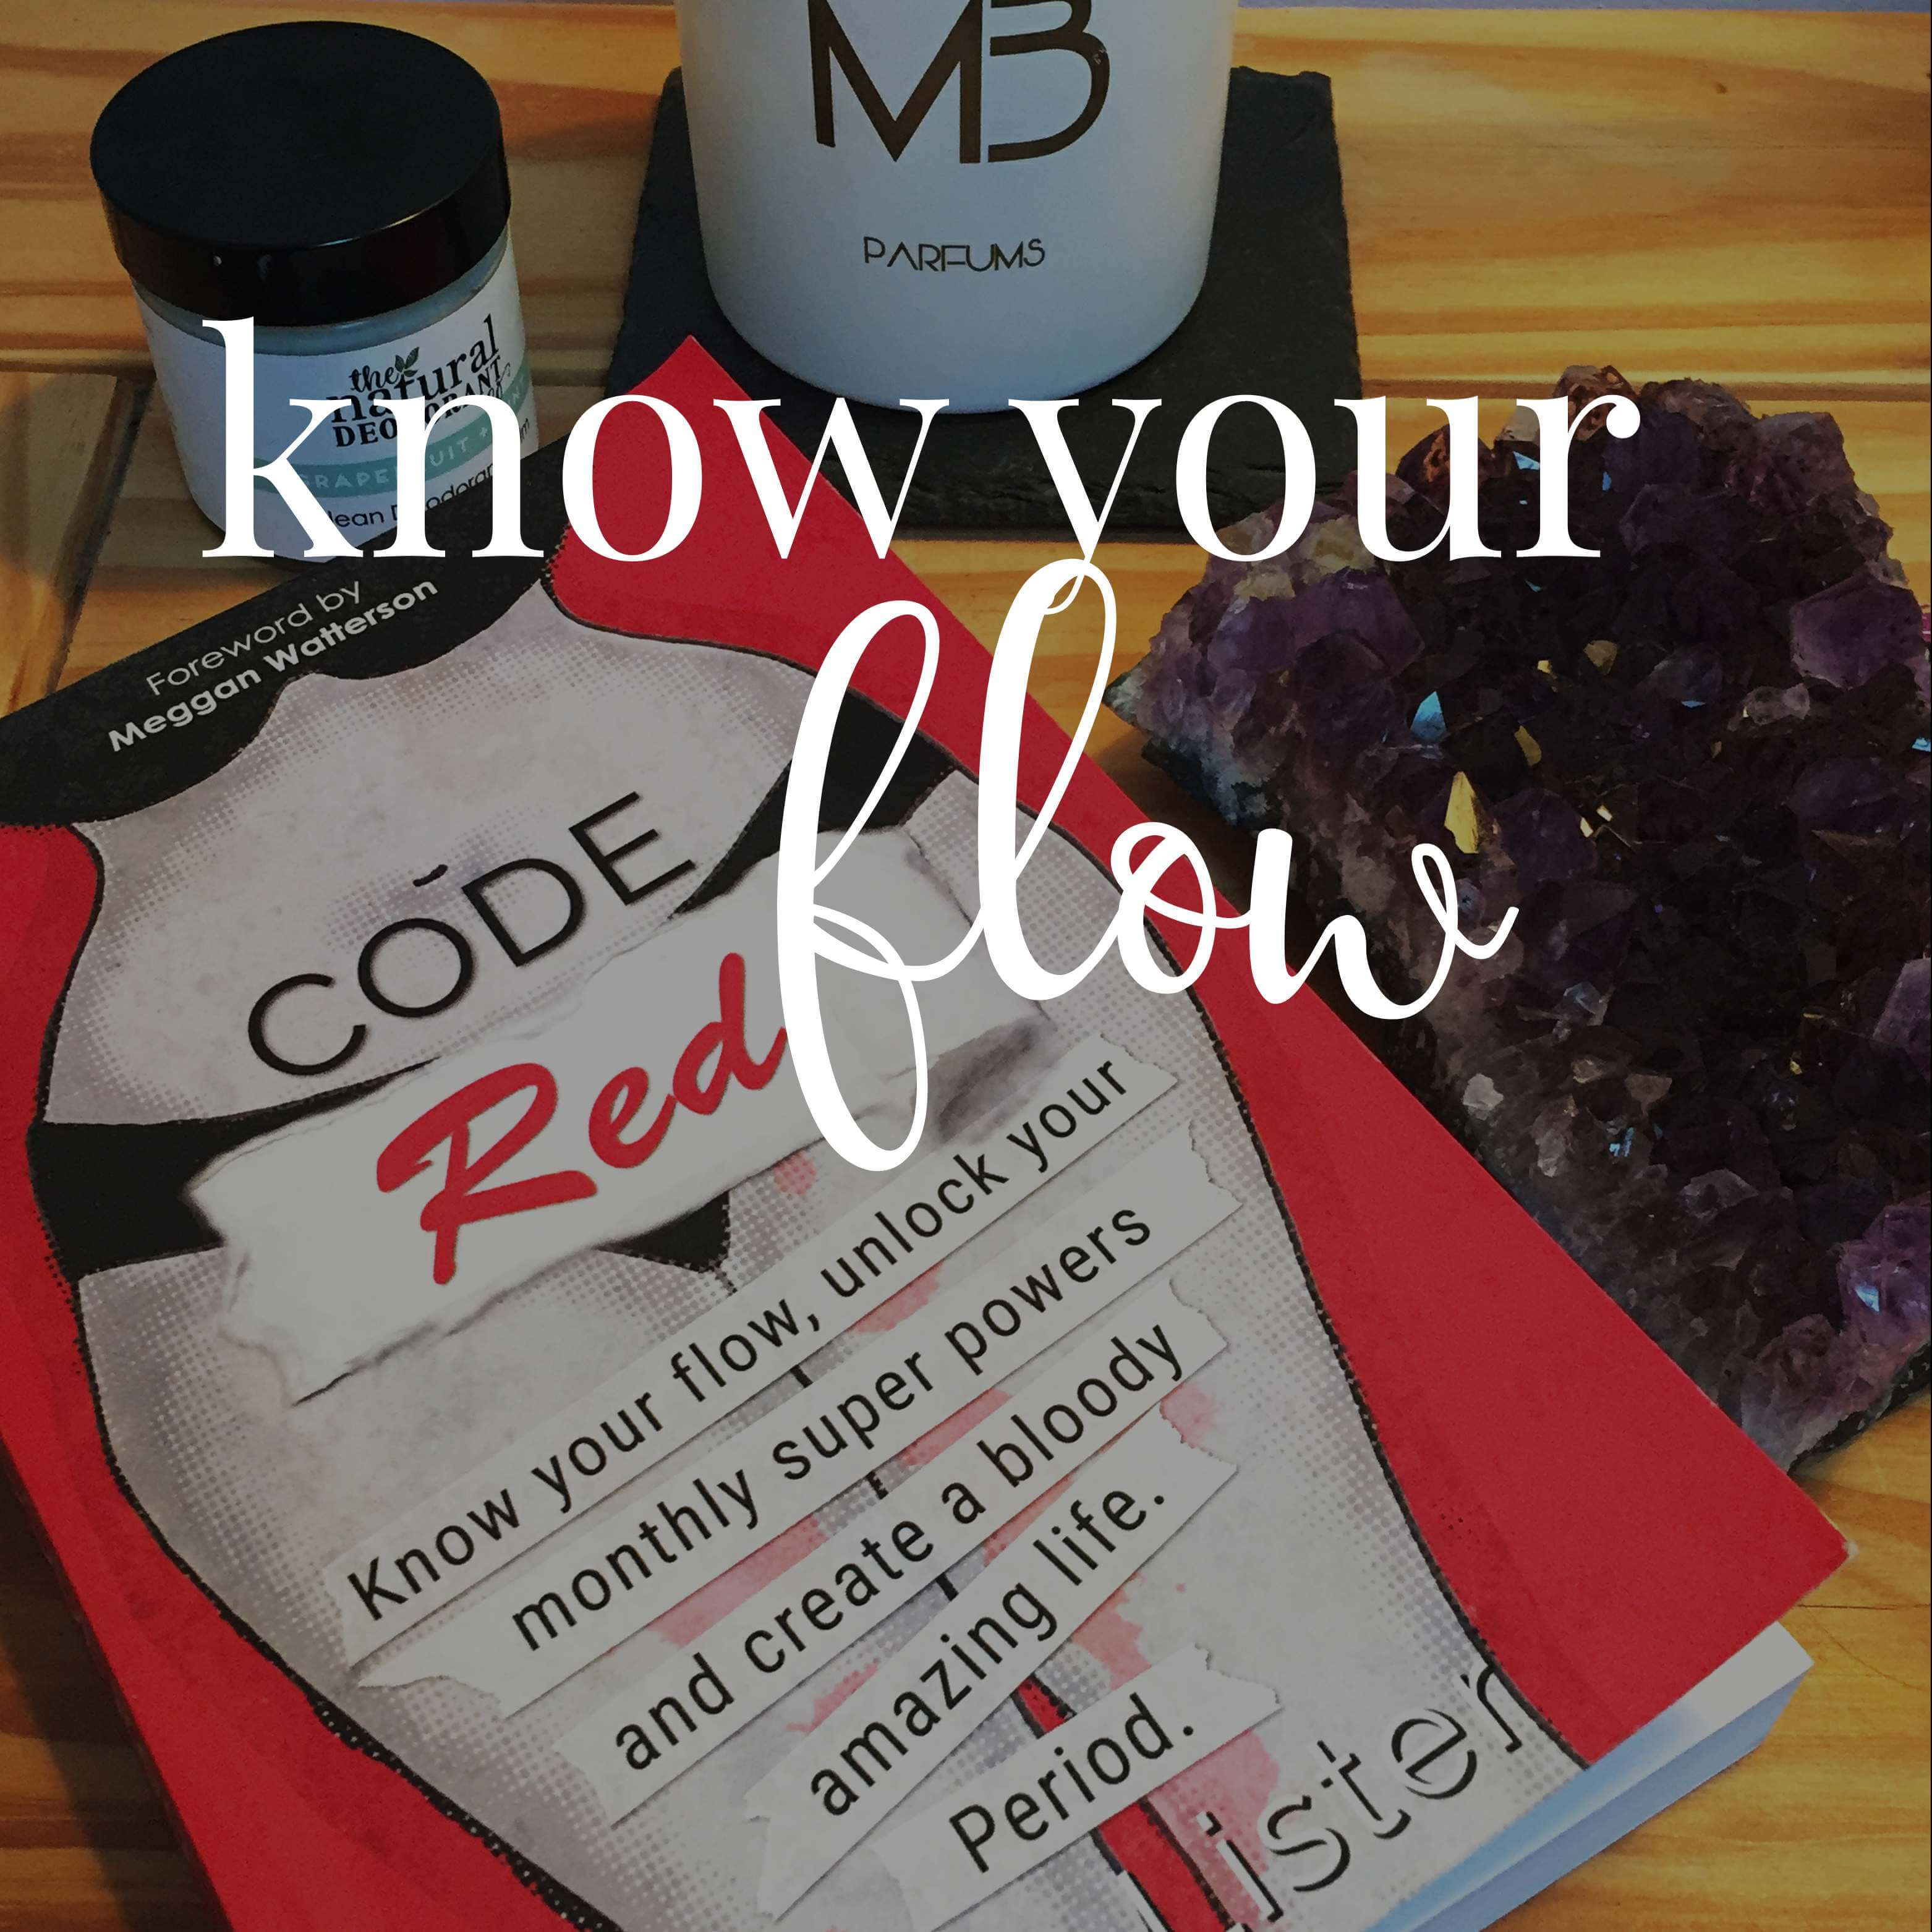 Code red book on wooden surface with amethyst geode, candle and cosmetics.